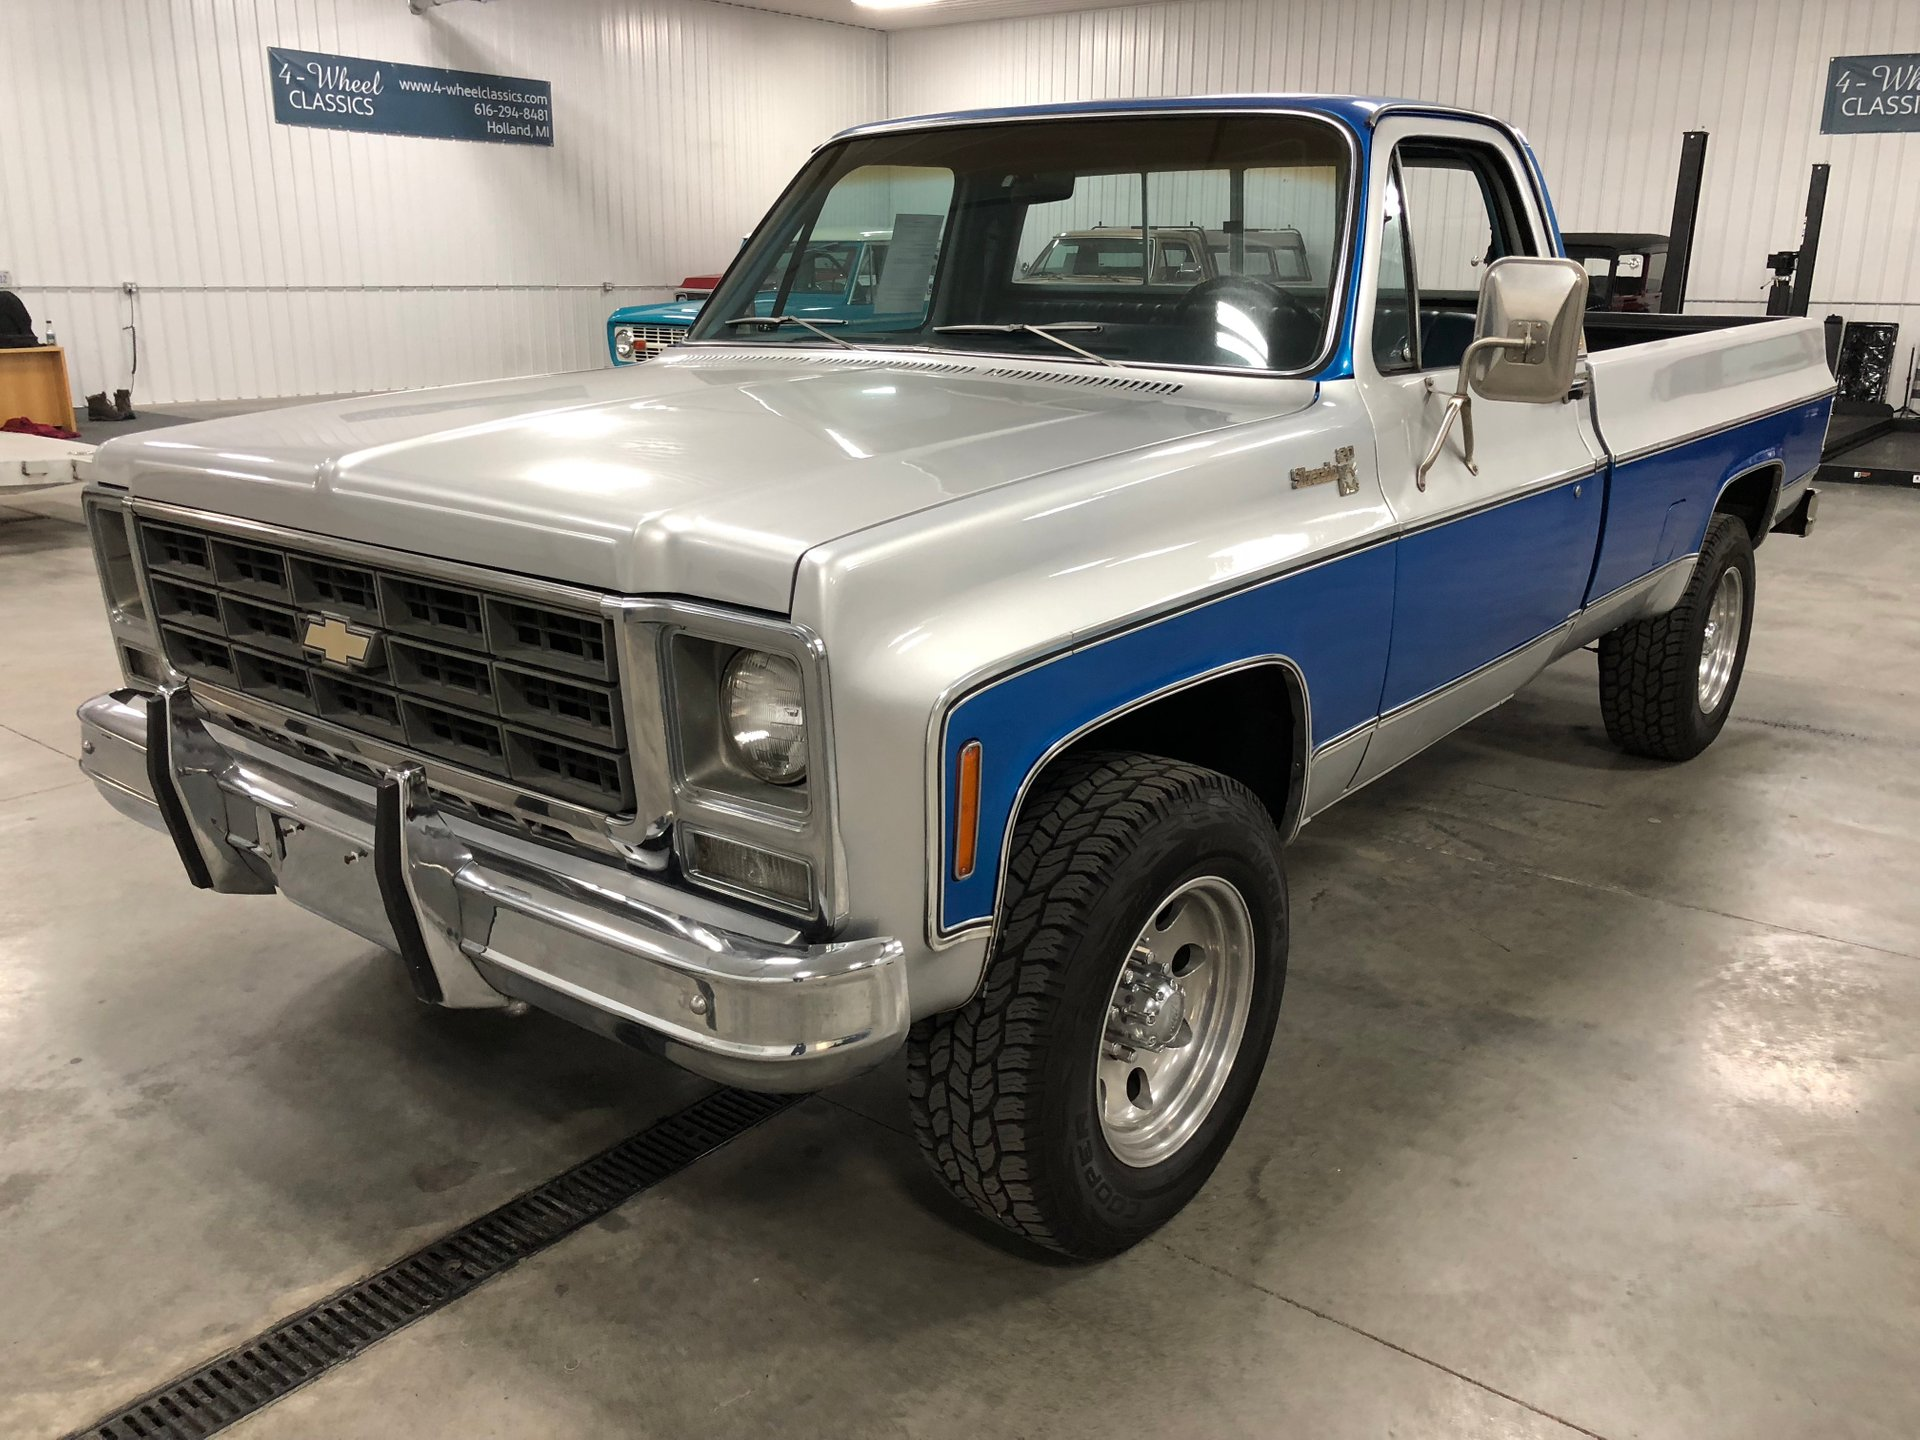 1979 Chevrolet K 20 4 Wheel Classics Classic Car Truck And Suv Sales